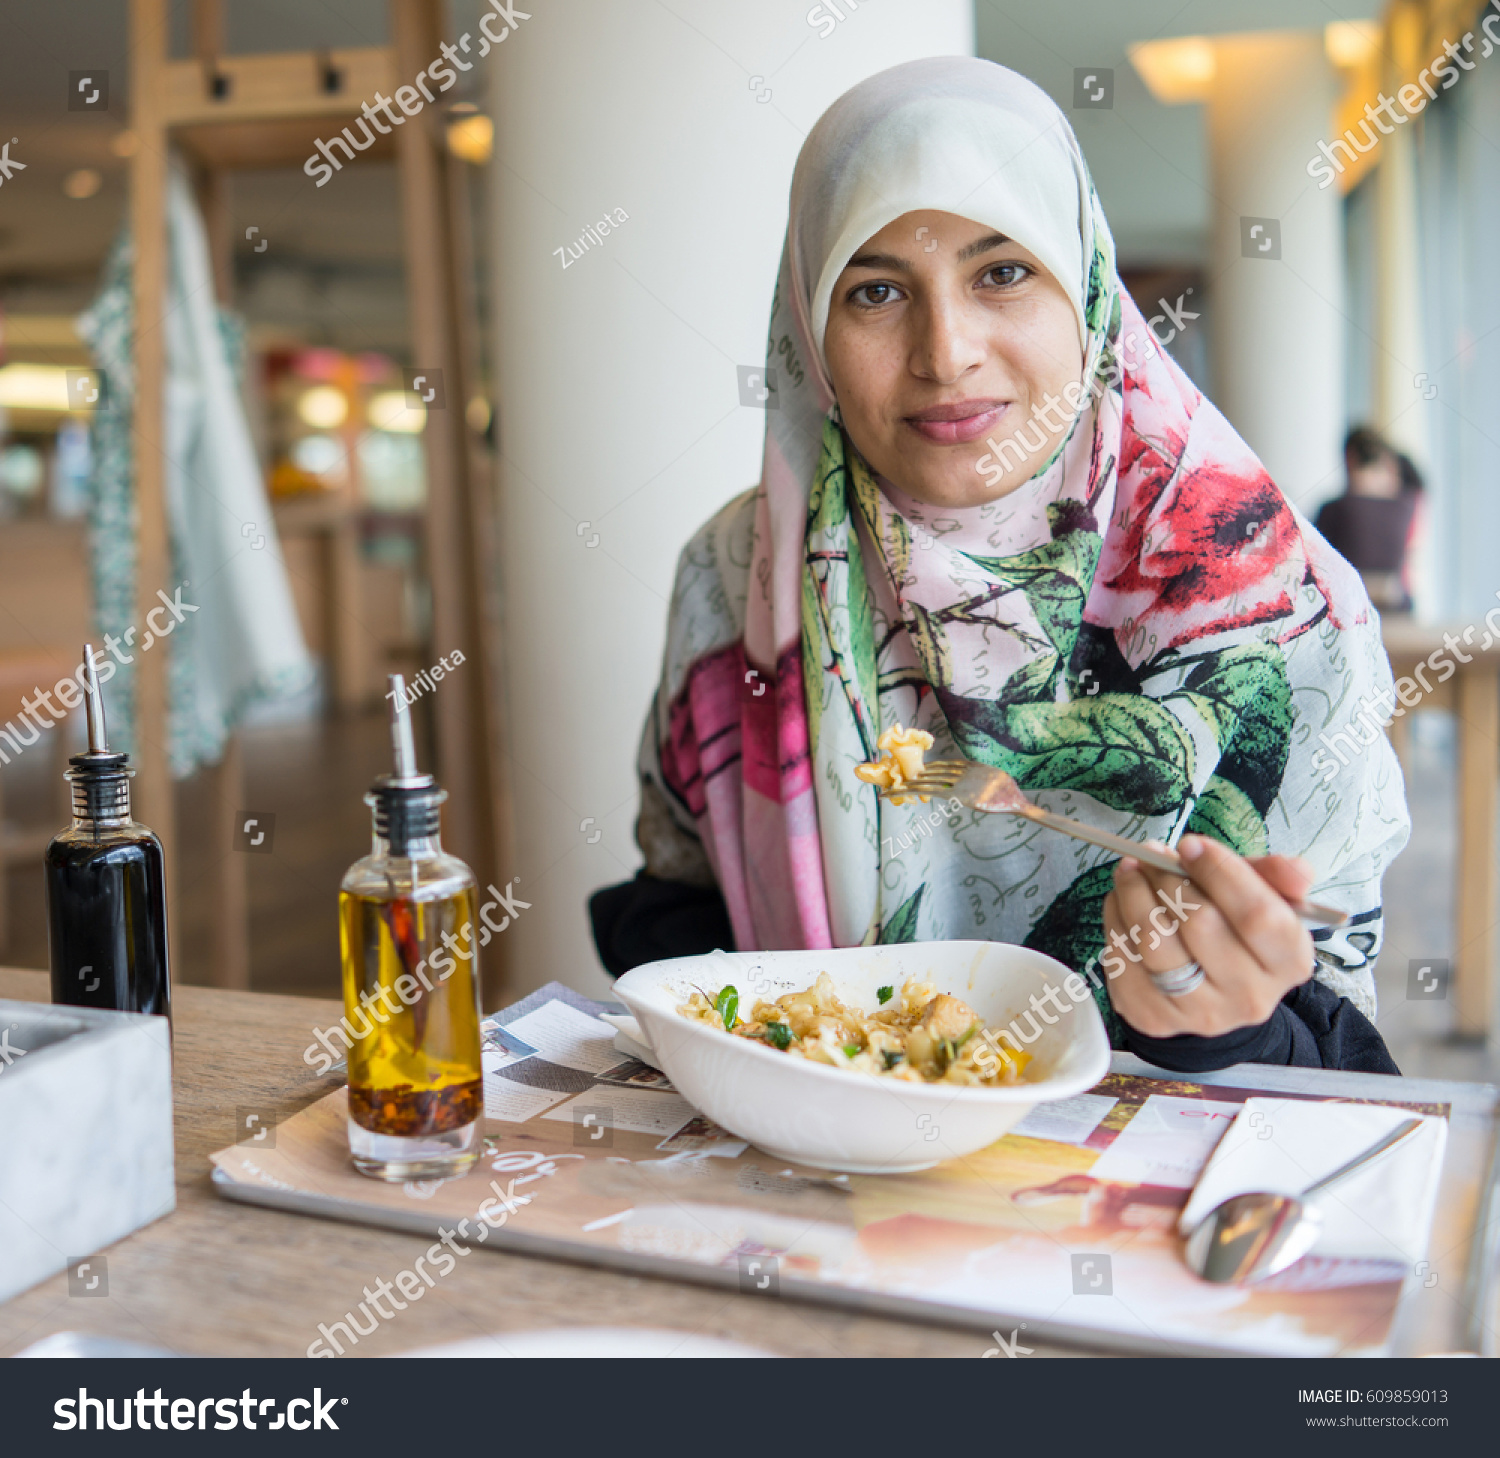 rest muslim girl personals Ethiopia muslim marriage, matrimonial, dating, or social networking website.